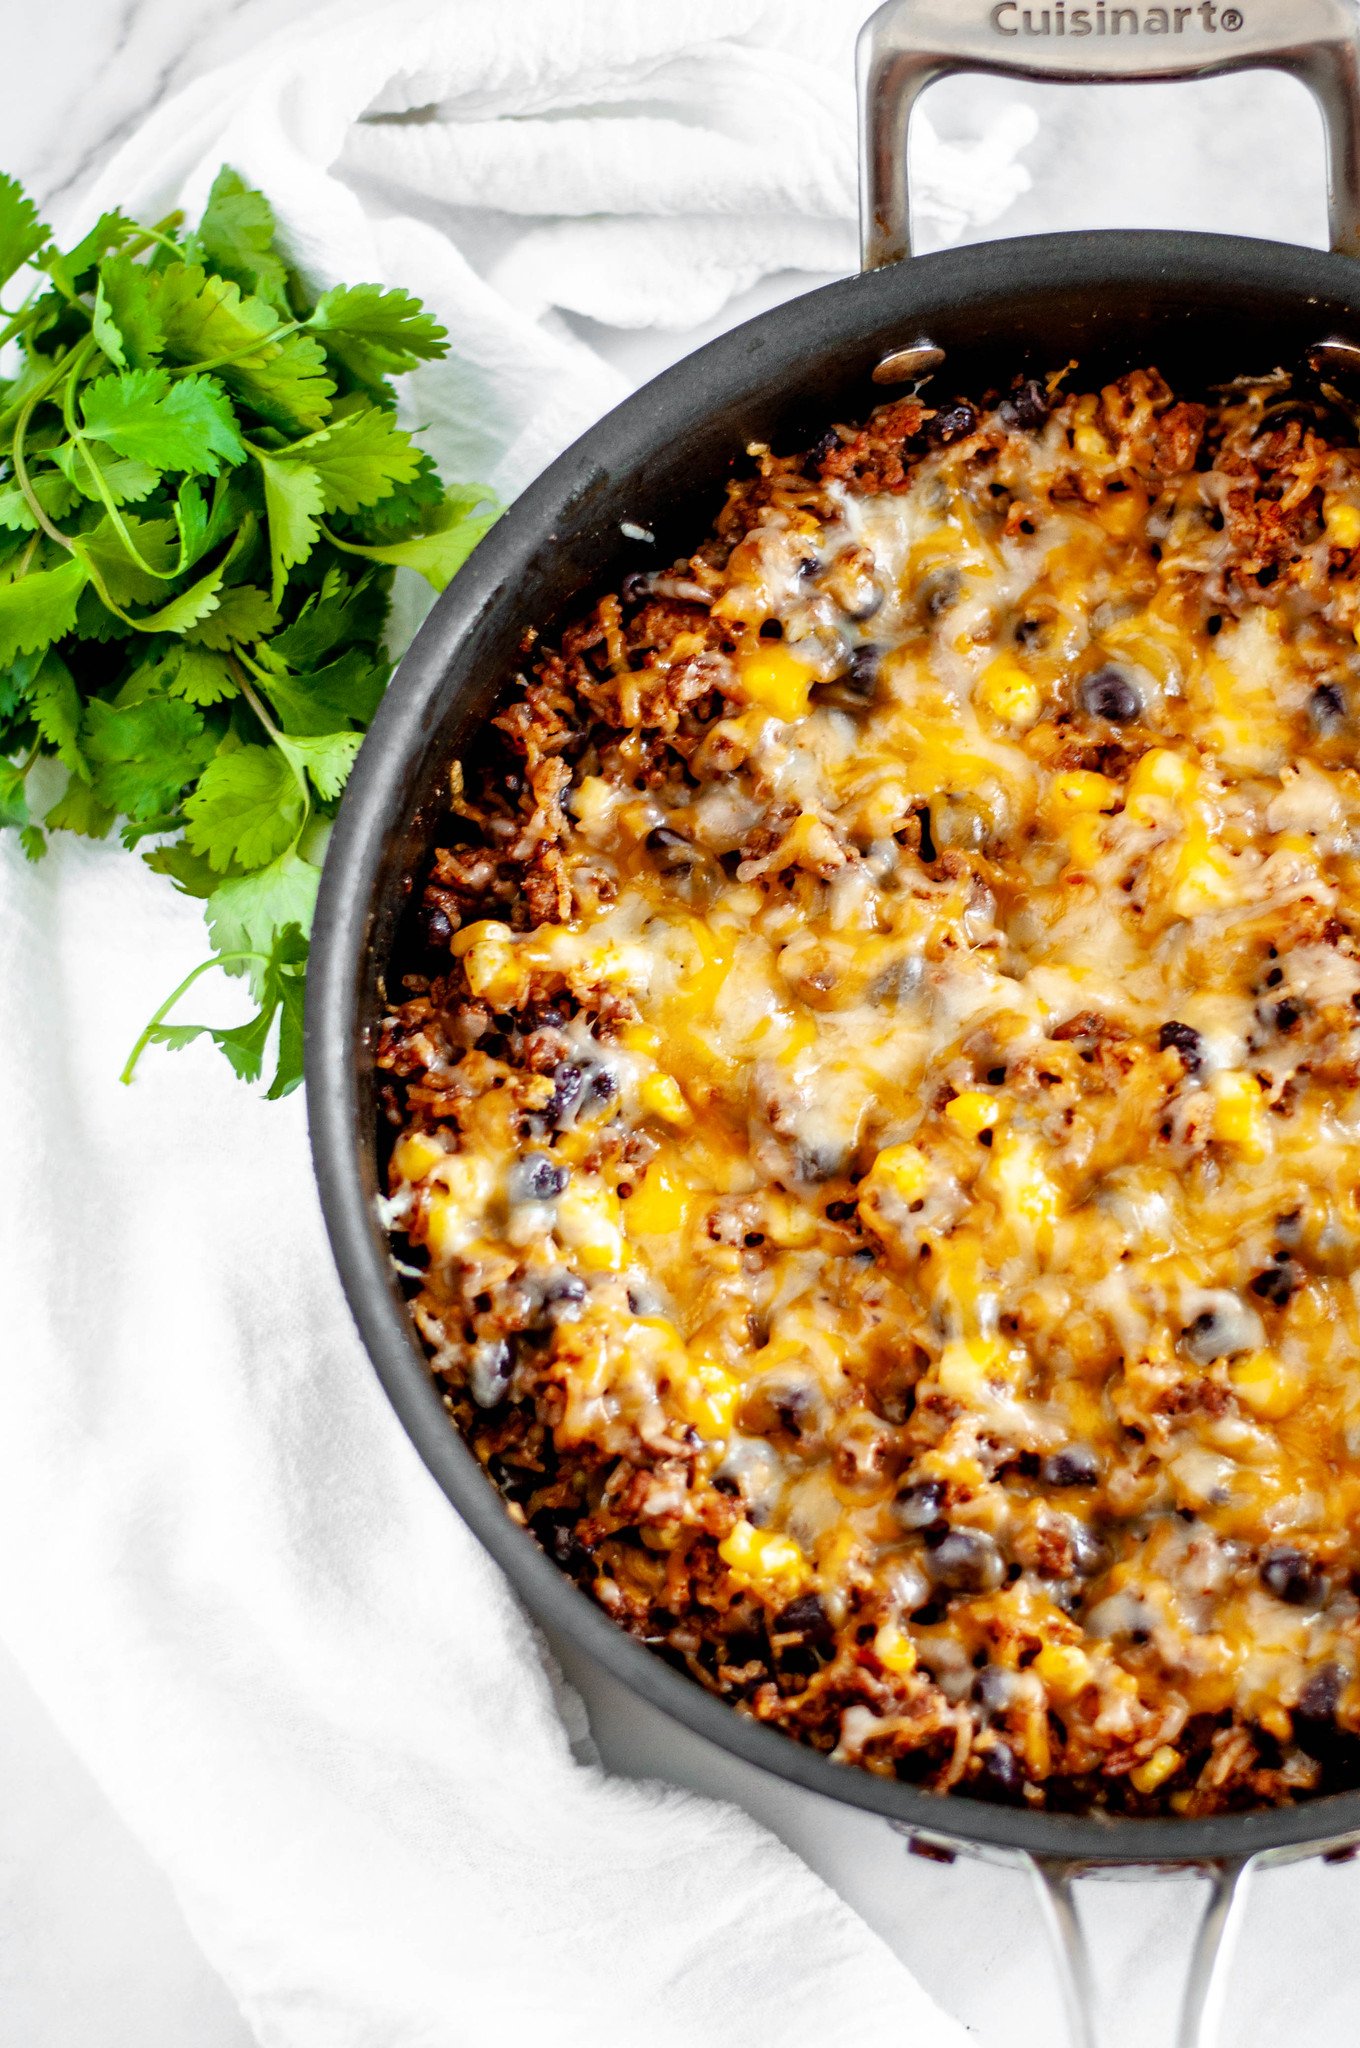 This Cheesy Mexican Skillet is done in 30 minutes for the perfect weeknight meal. Packed full of Mexican flavor from enchilada sauce, cumin, chili powder and more.